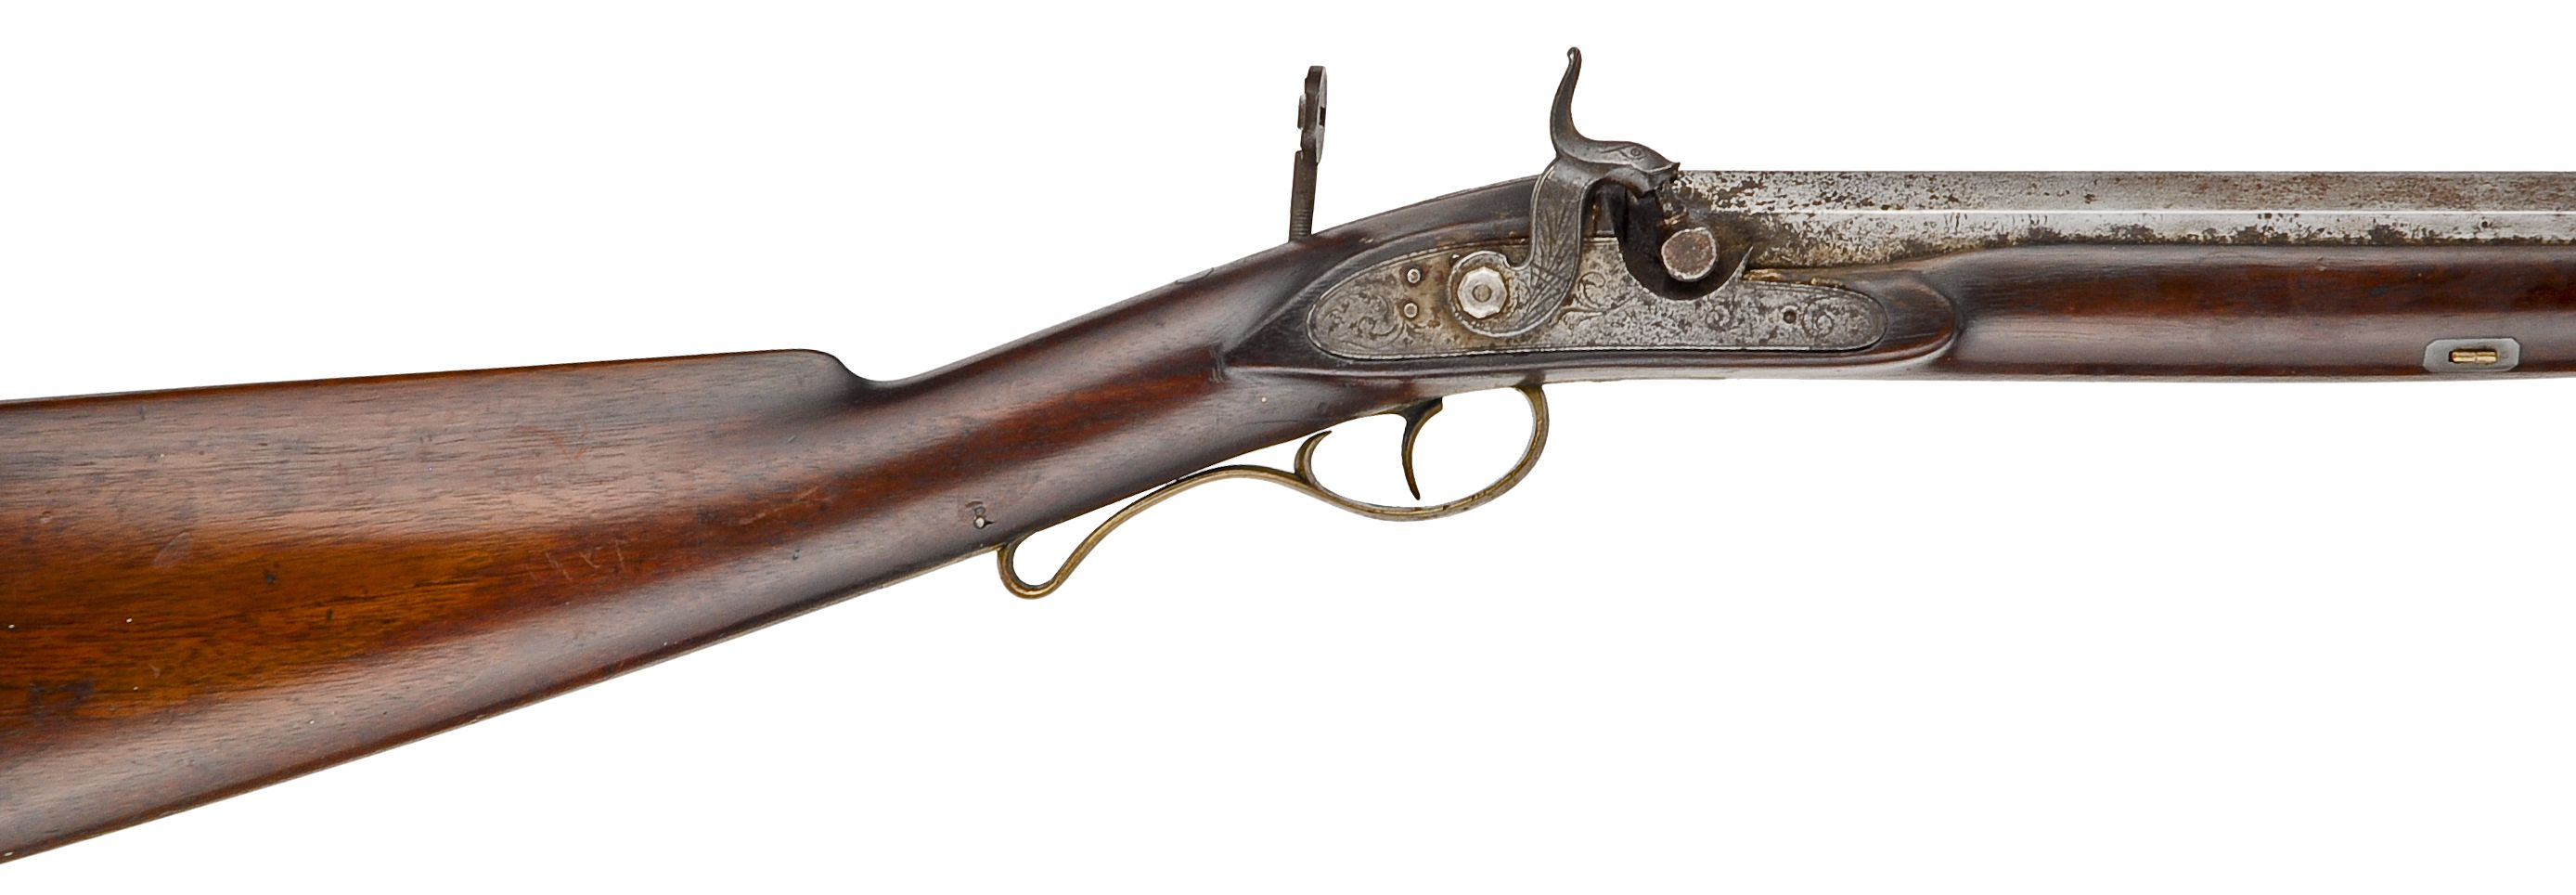 A Billinghurst Rifle; the kind of arm brought from home for use in units like Berdan's.